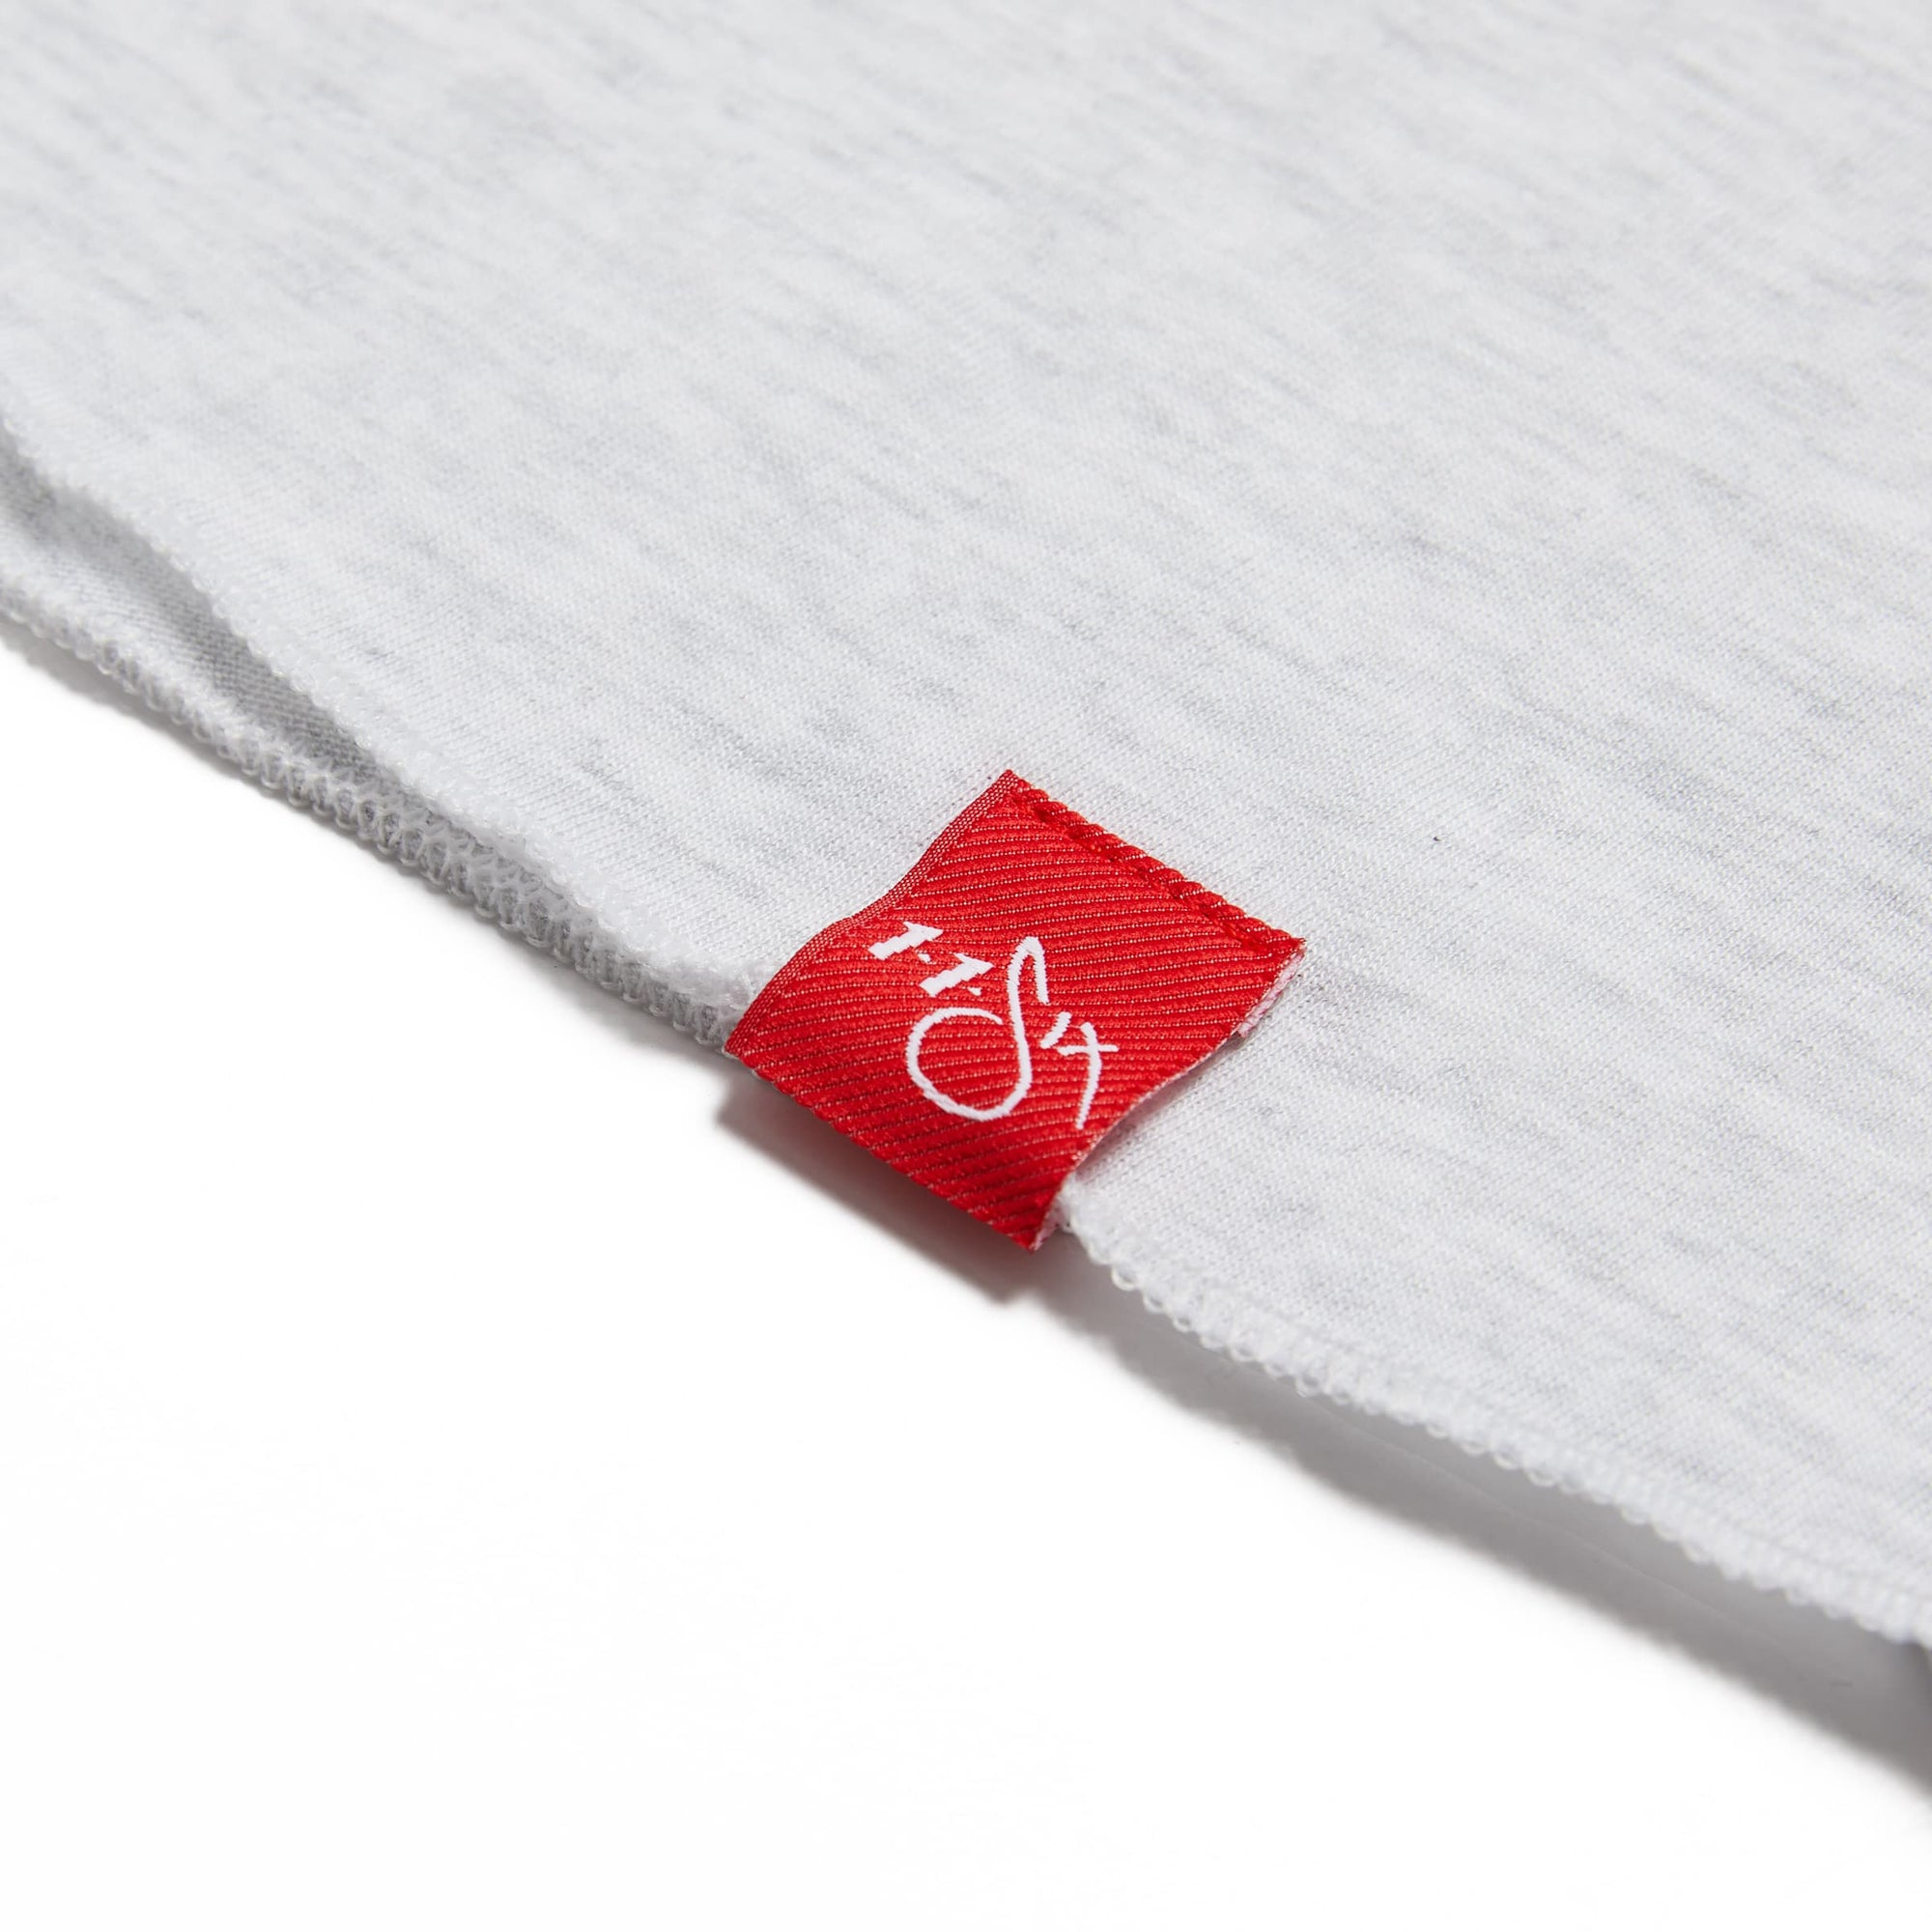 116 'Red Label' Raglan